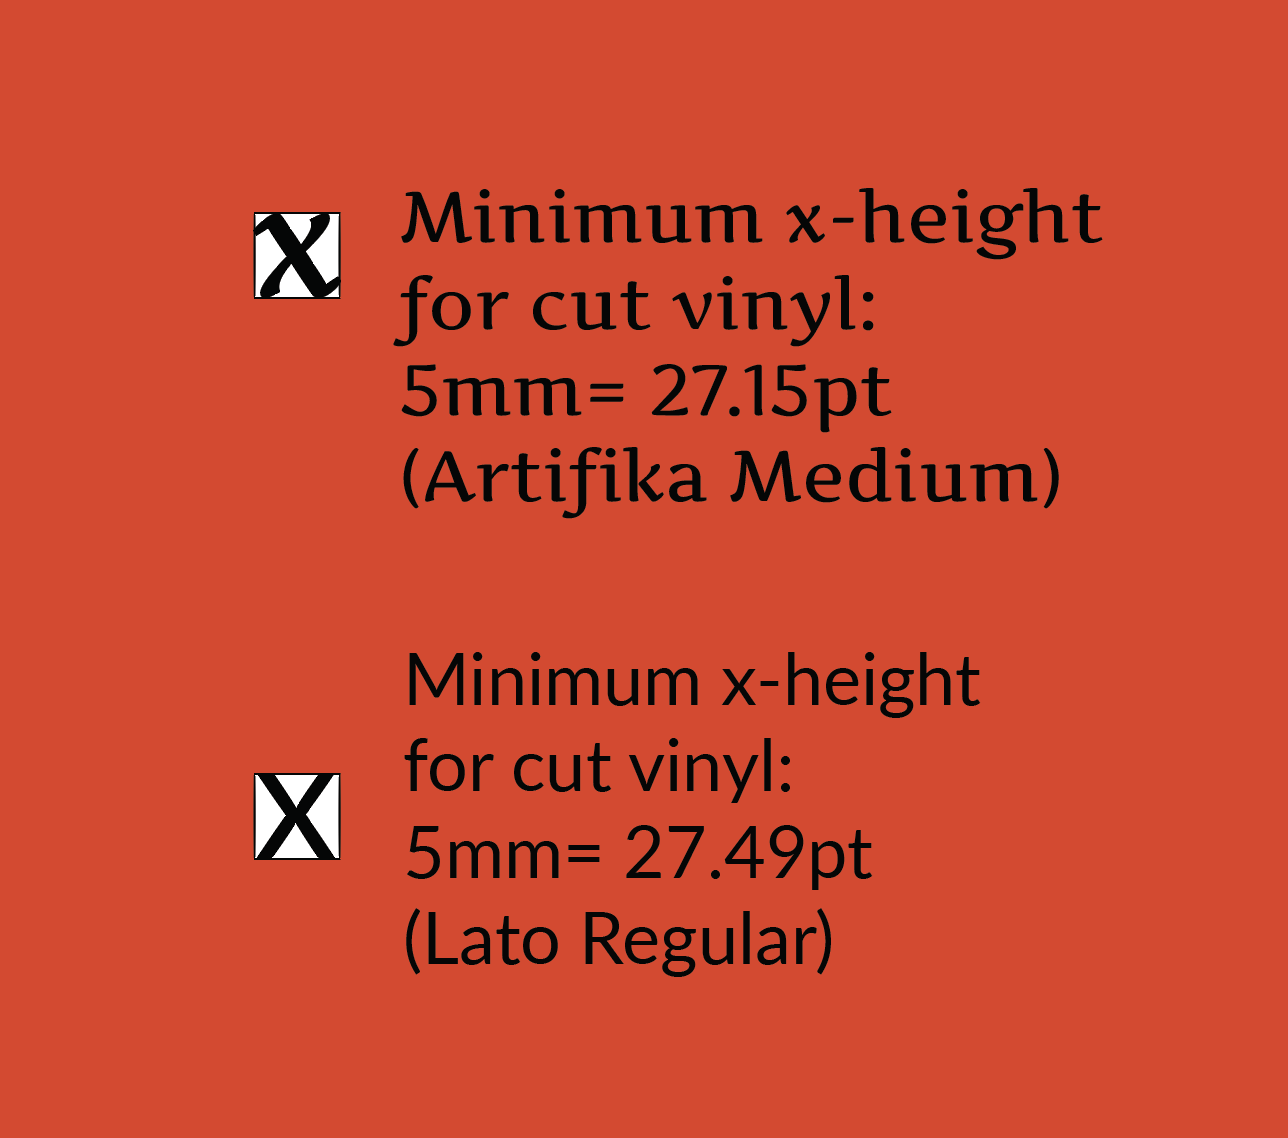 x-height testing